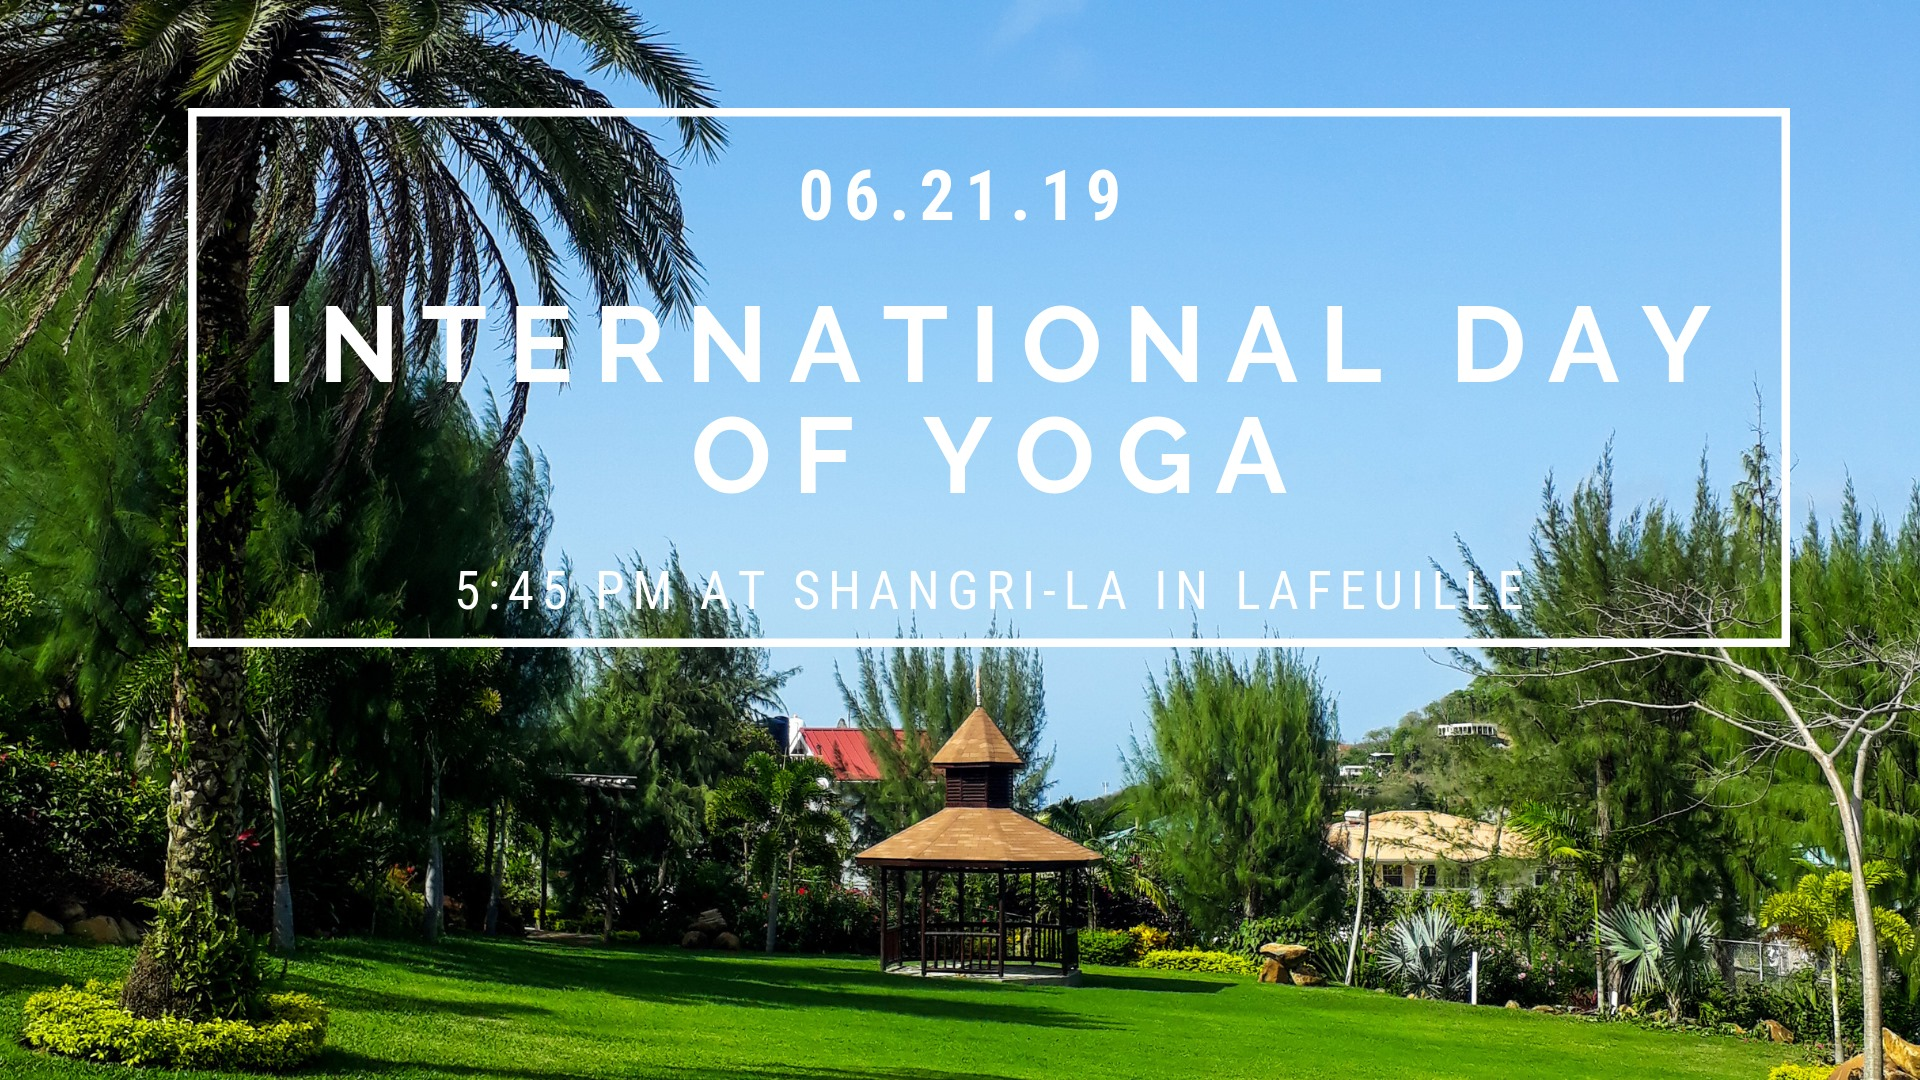 At the beautiful Shangri-La, the Art of Living Foundation together with Yoga with Ja are hosting this free International Yoga day event